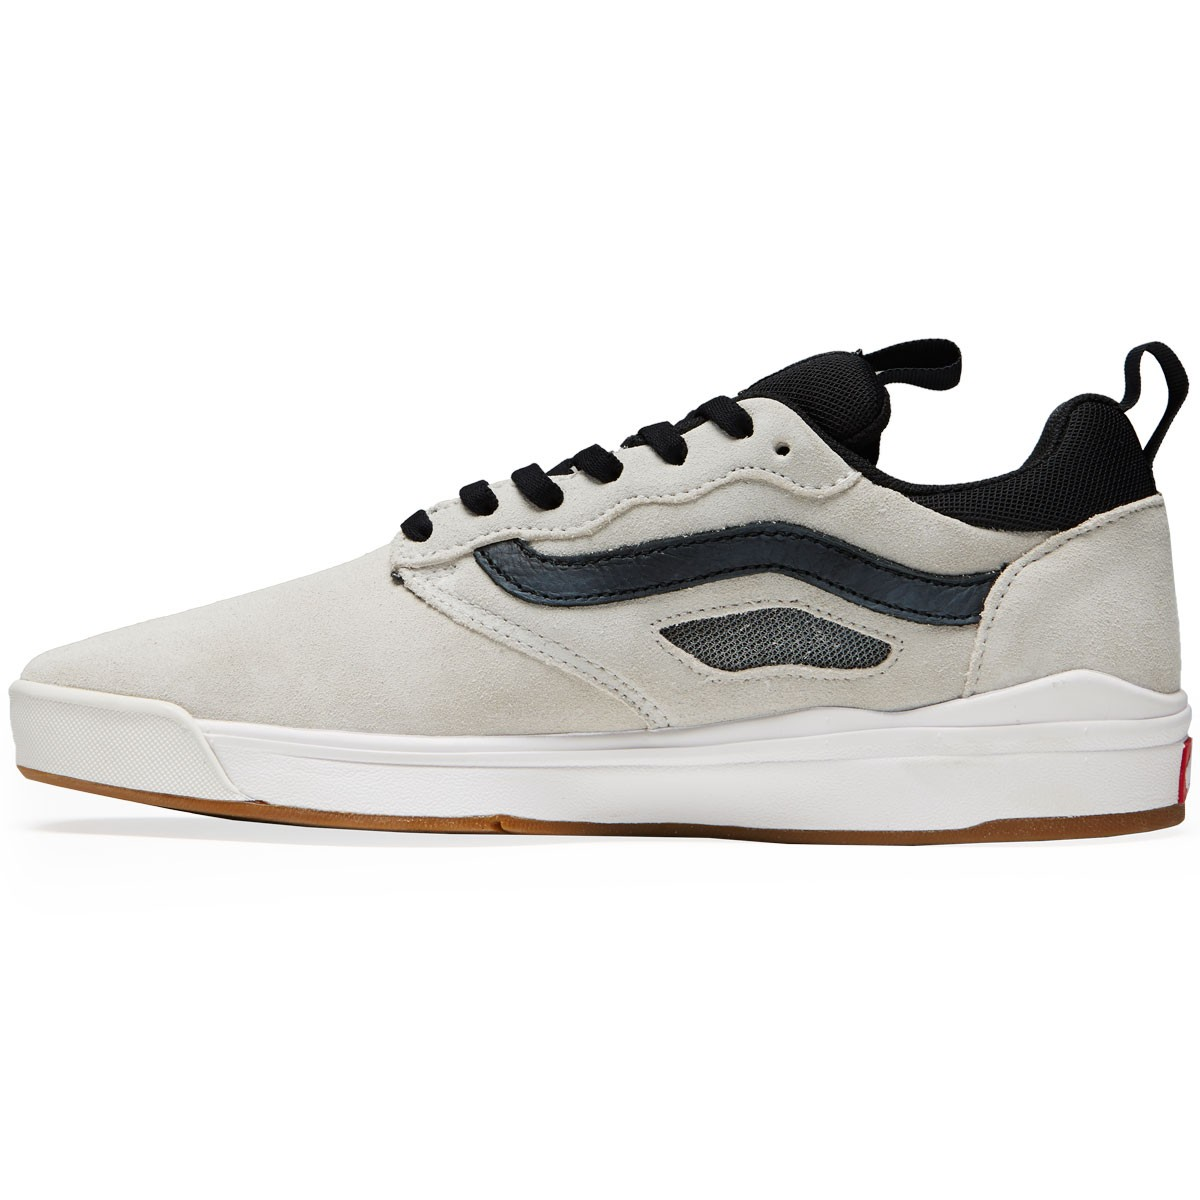 6f066d5cfff478 Vans UltraRange Pro Shoes